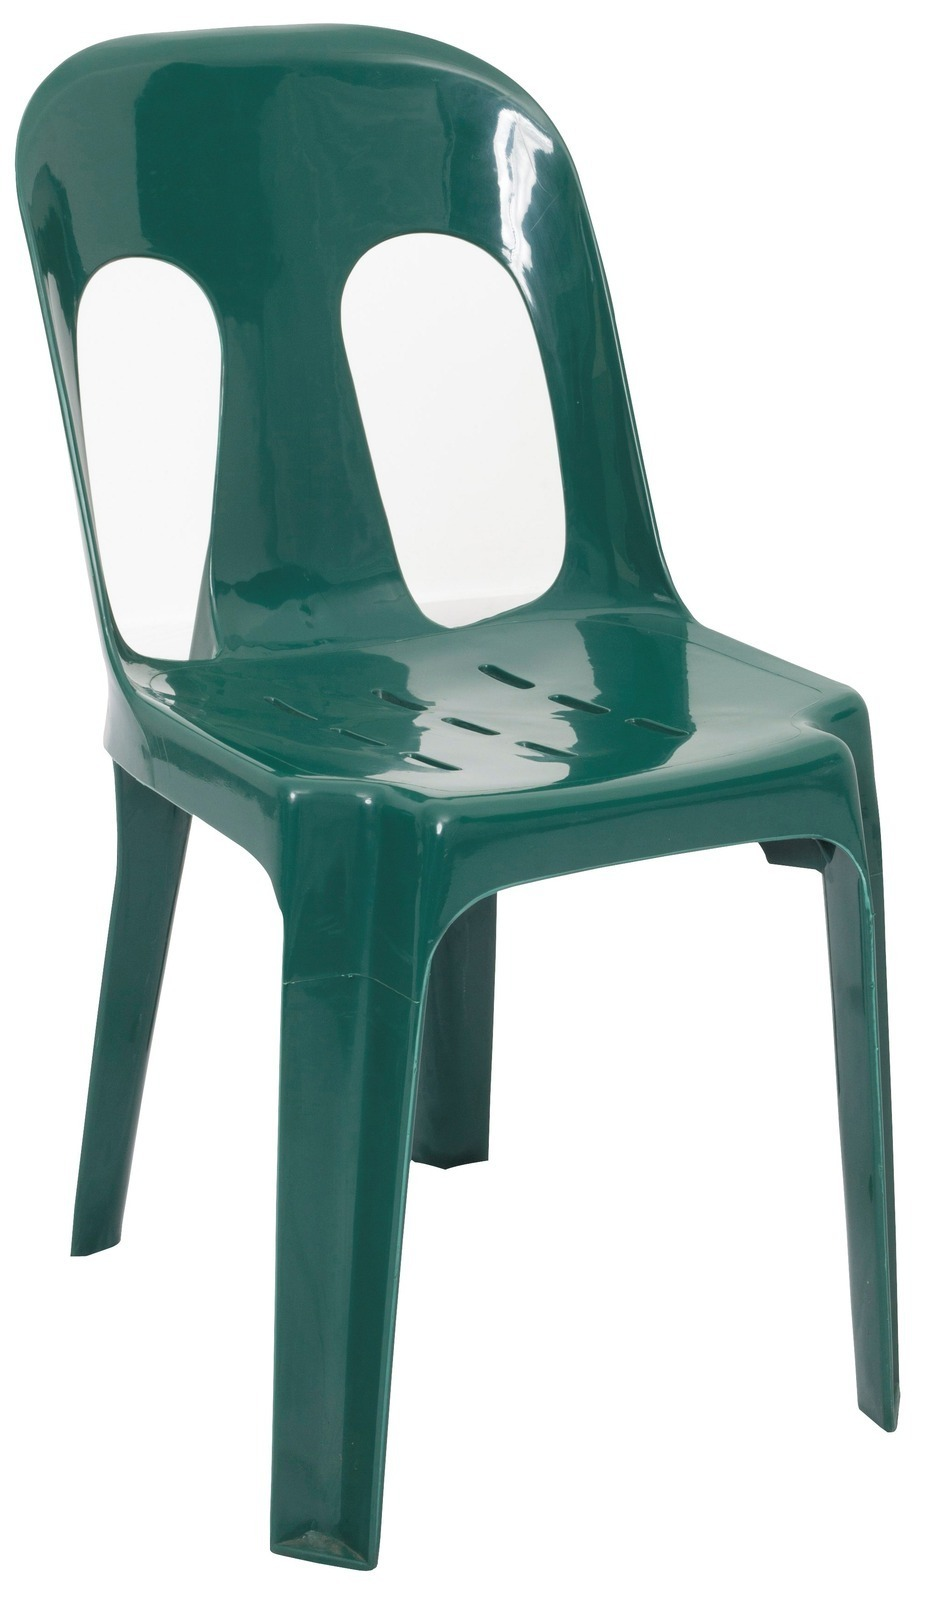 Pipee Stacking Plastic Chair  Office Stock